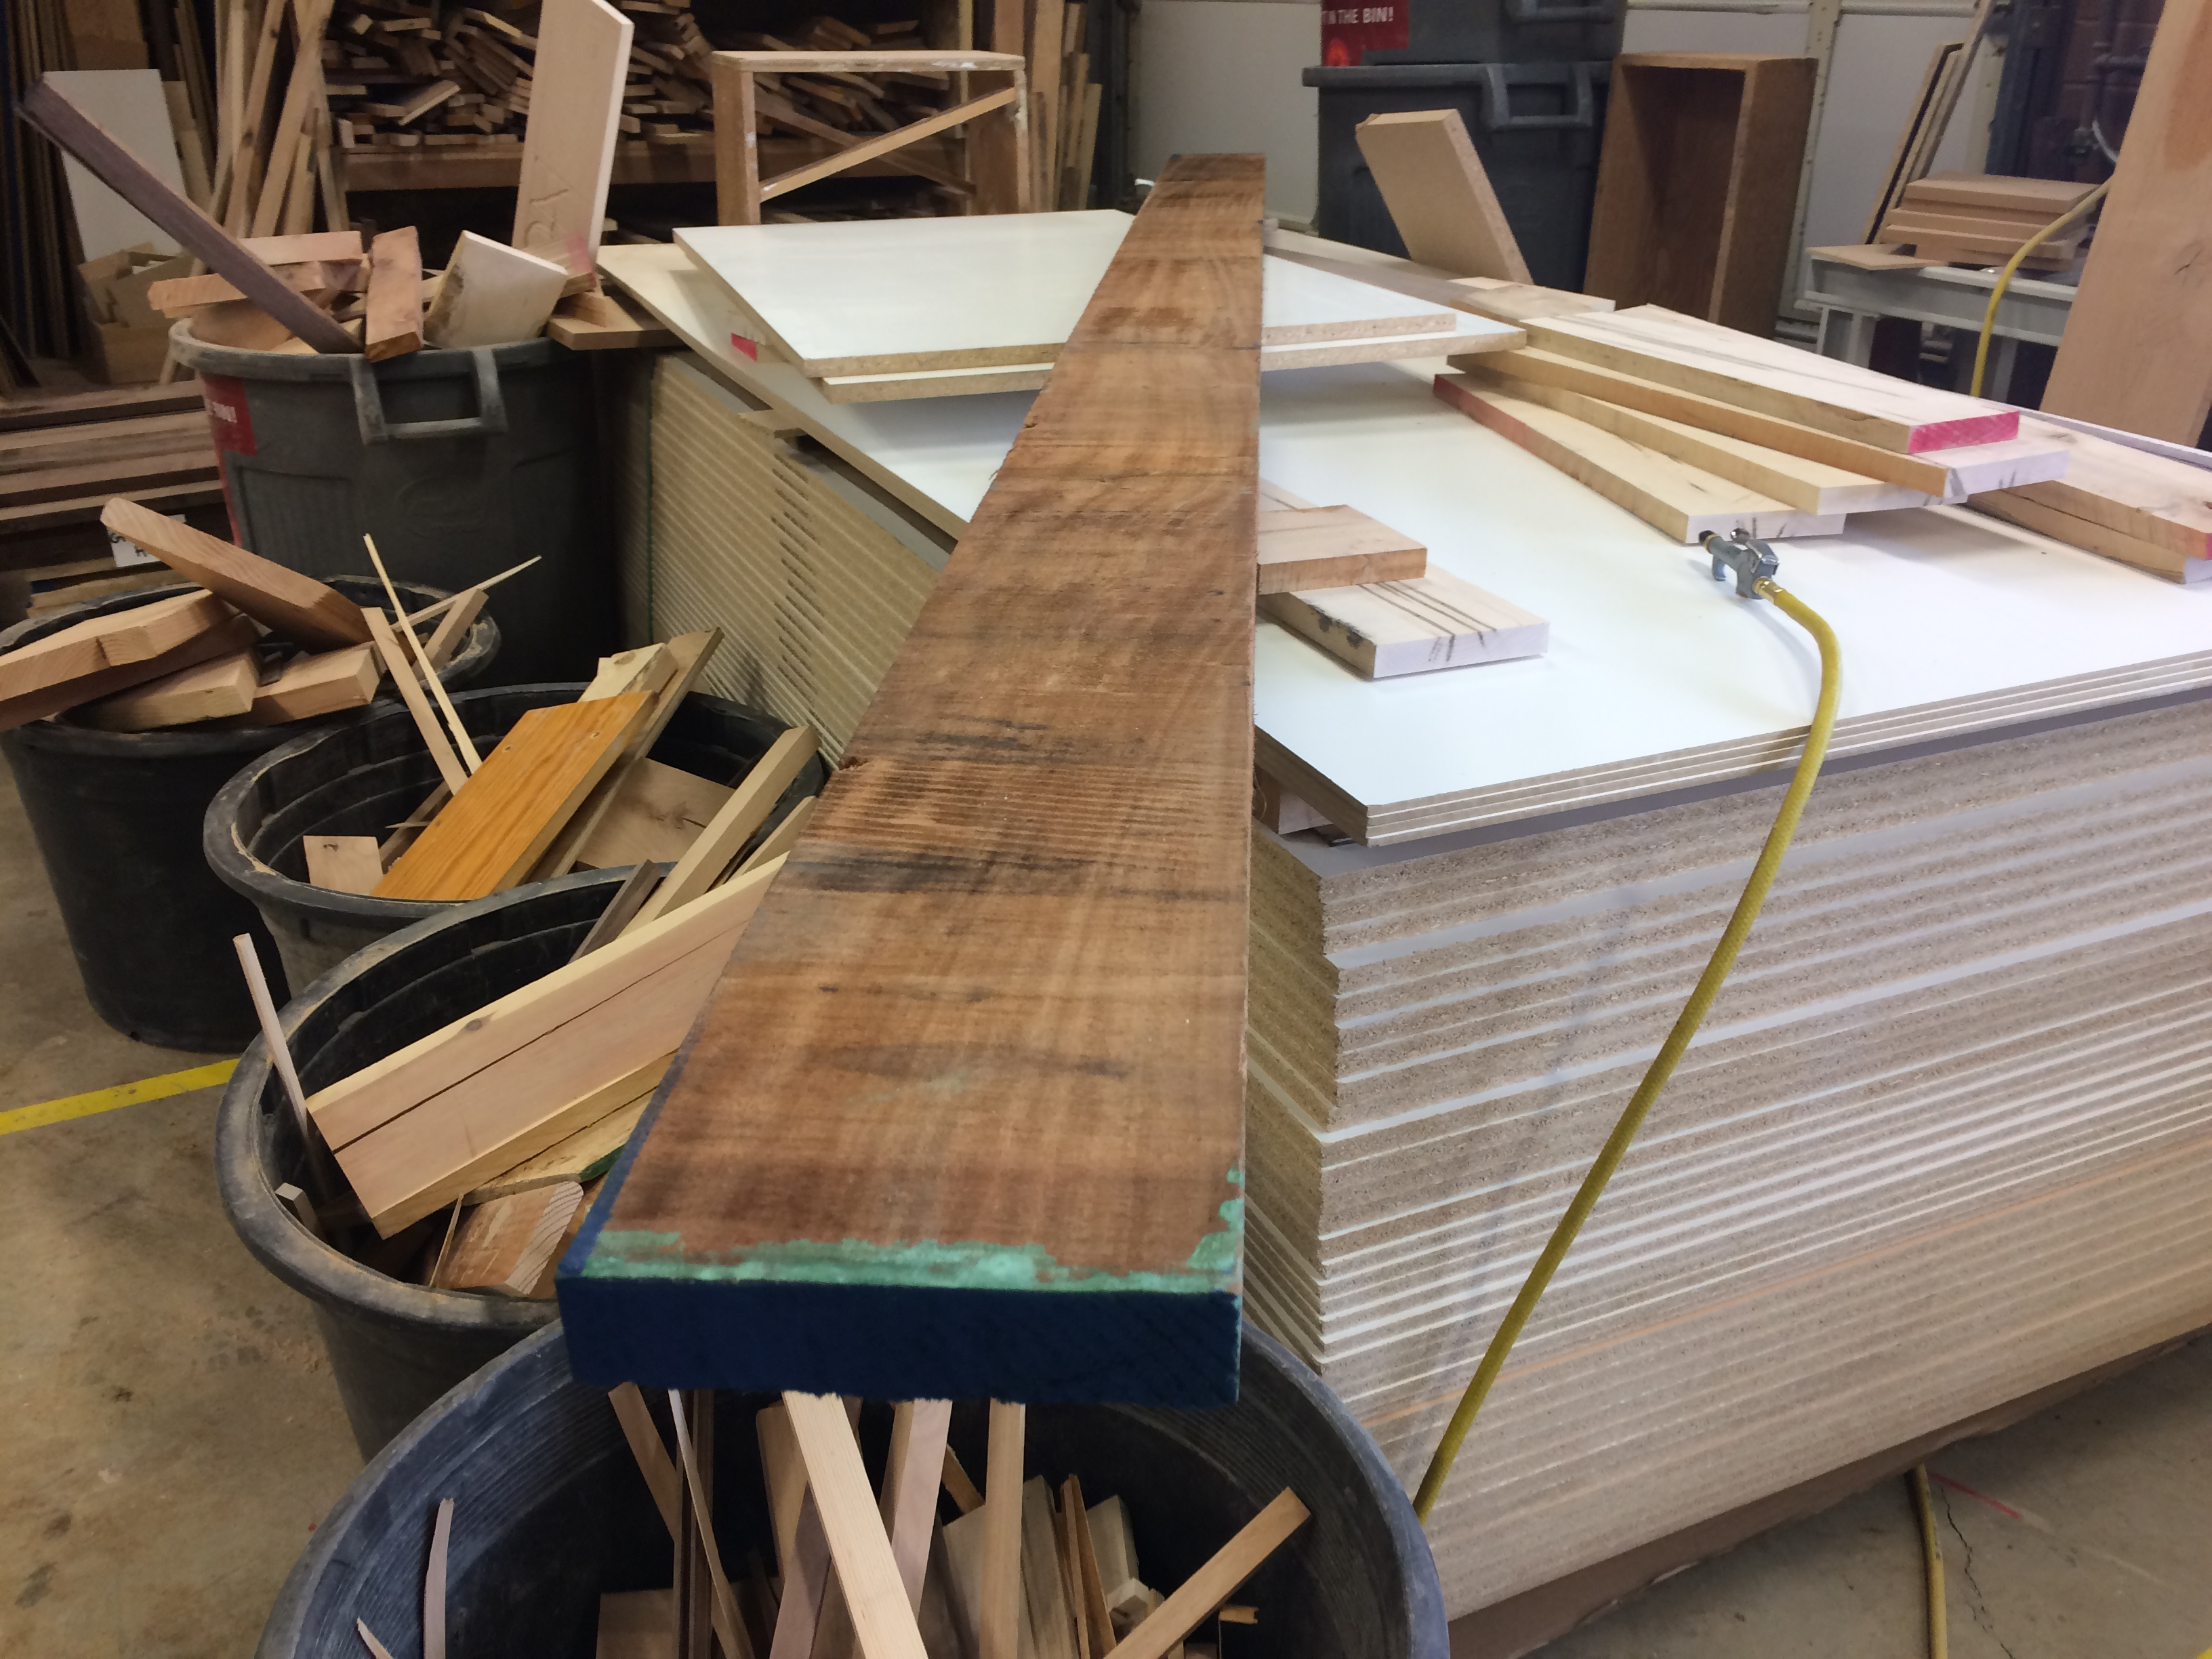 Picture of Preparing Wood for Cutting